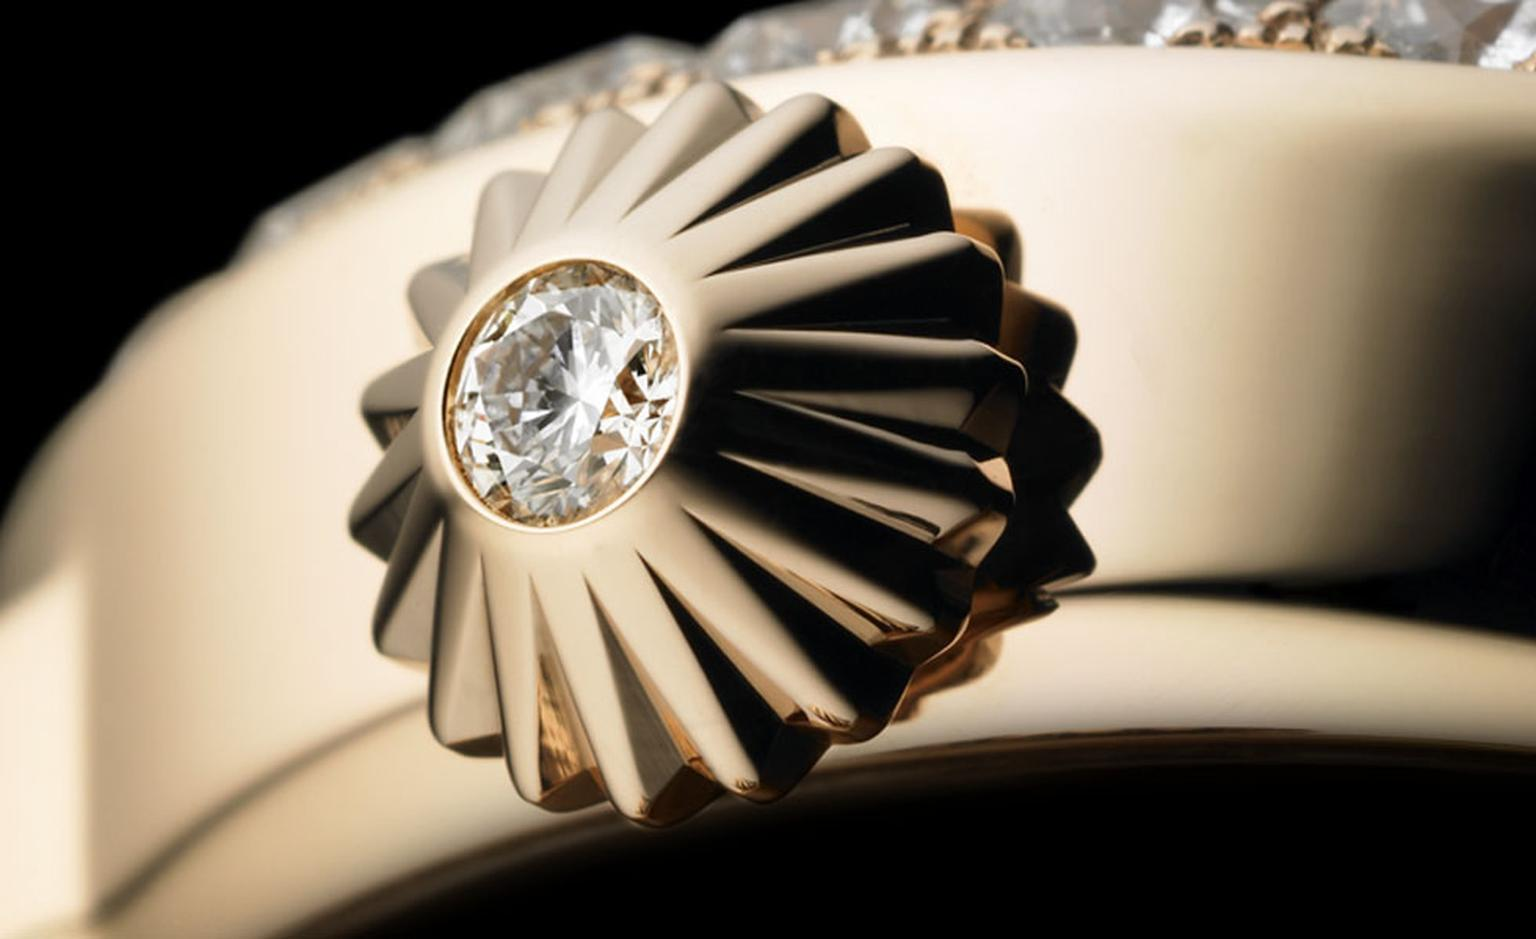 "Backes & Strauss. The Jewel in the Crown. Every Backes & Strauss watch has at least one diamond, set into the crown by hand; it is the Backes & Strauss signature ""The Jewel in the Crown"" which is designed to look like the pavilion of a diamond. ..."